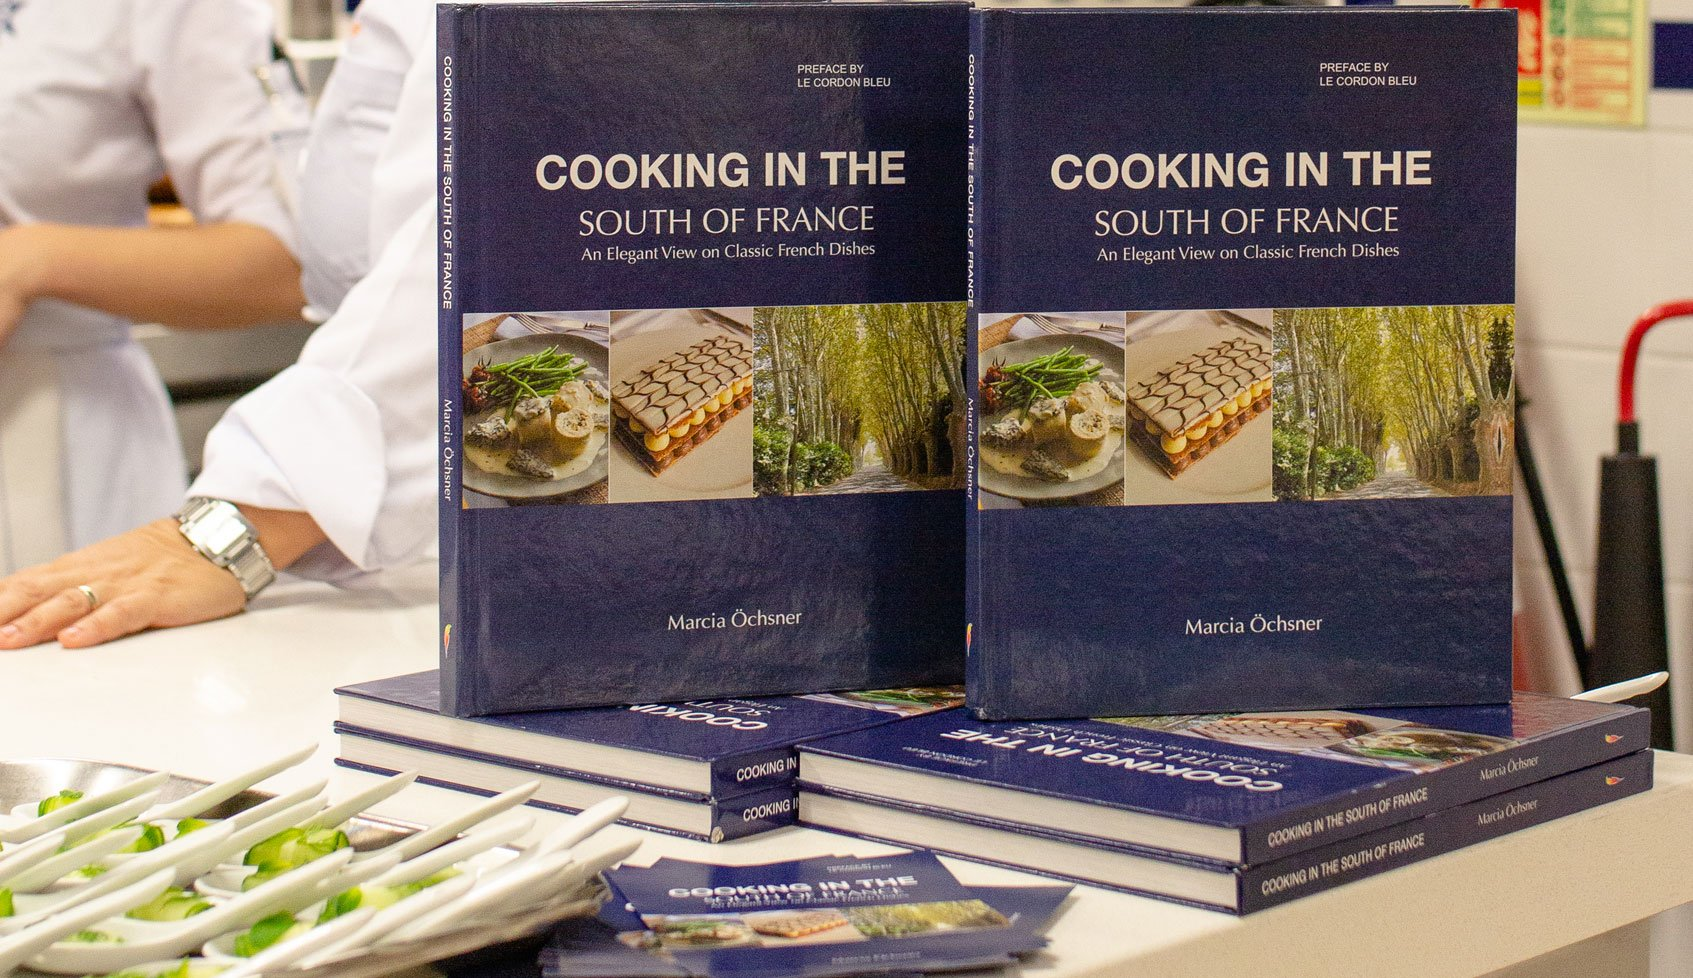 Cooking in the South of France by Marcia Öchsner